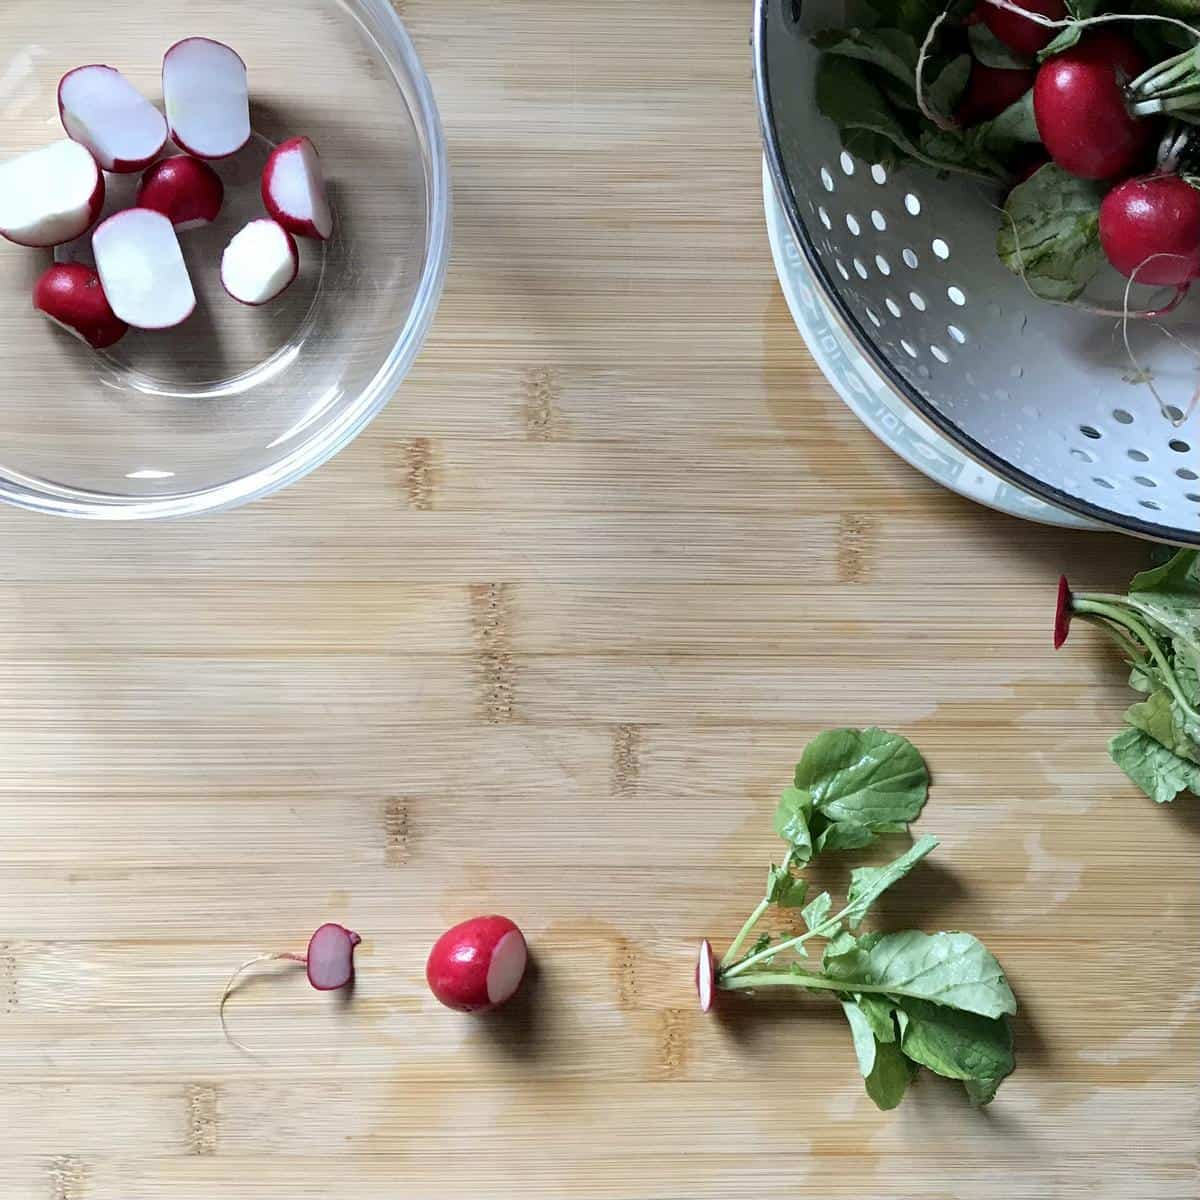 A trimmed radish on a wooden board.